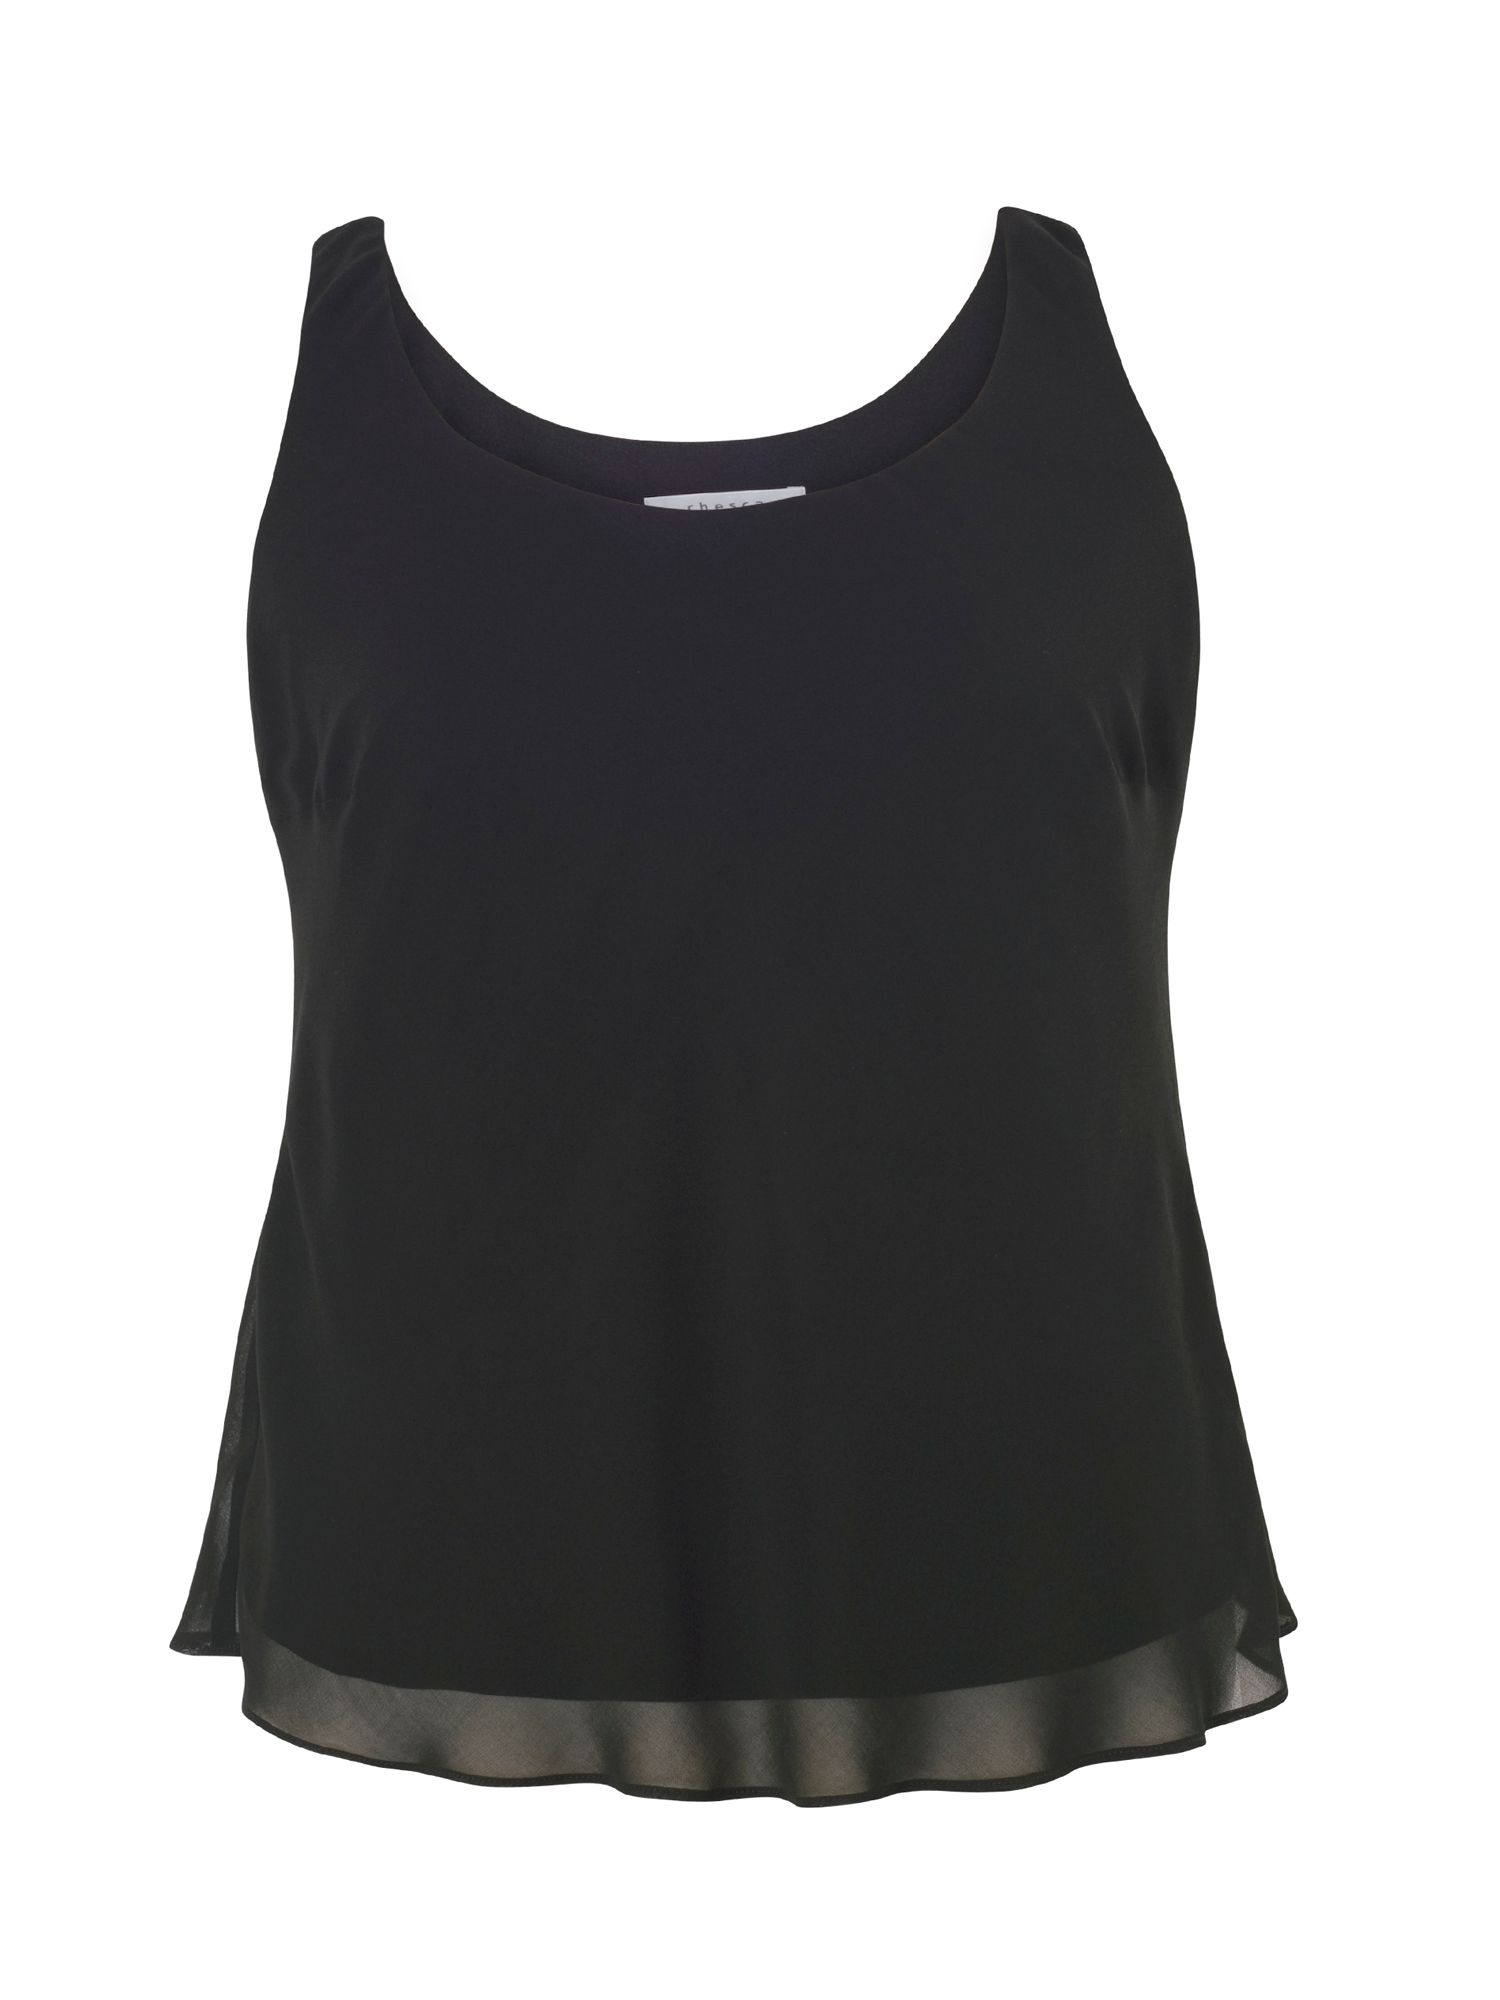 Chesca Chiffon Camisole with Jersey Lining, Black